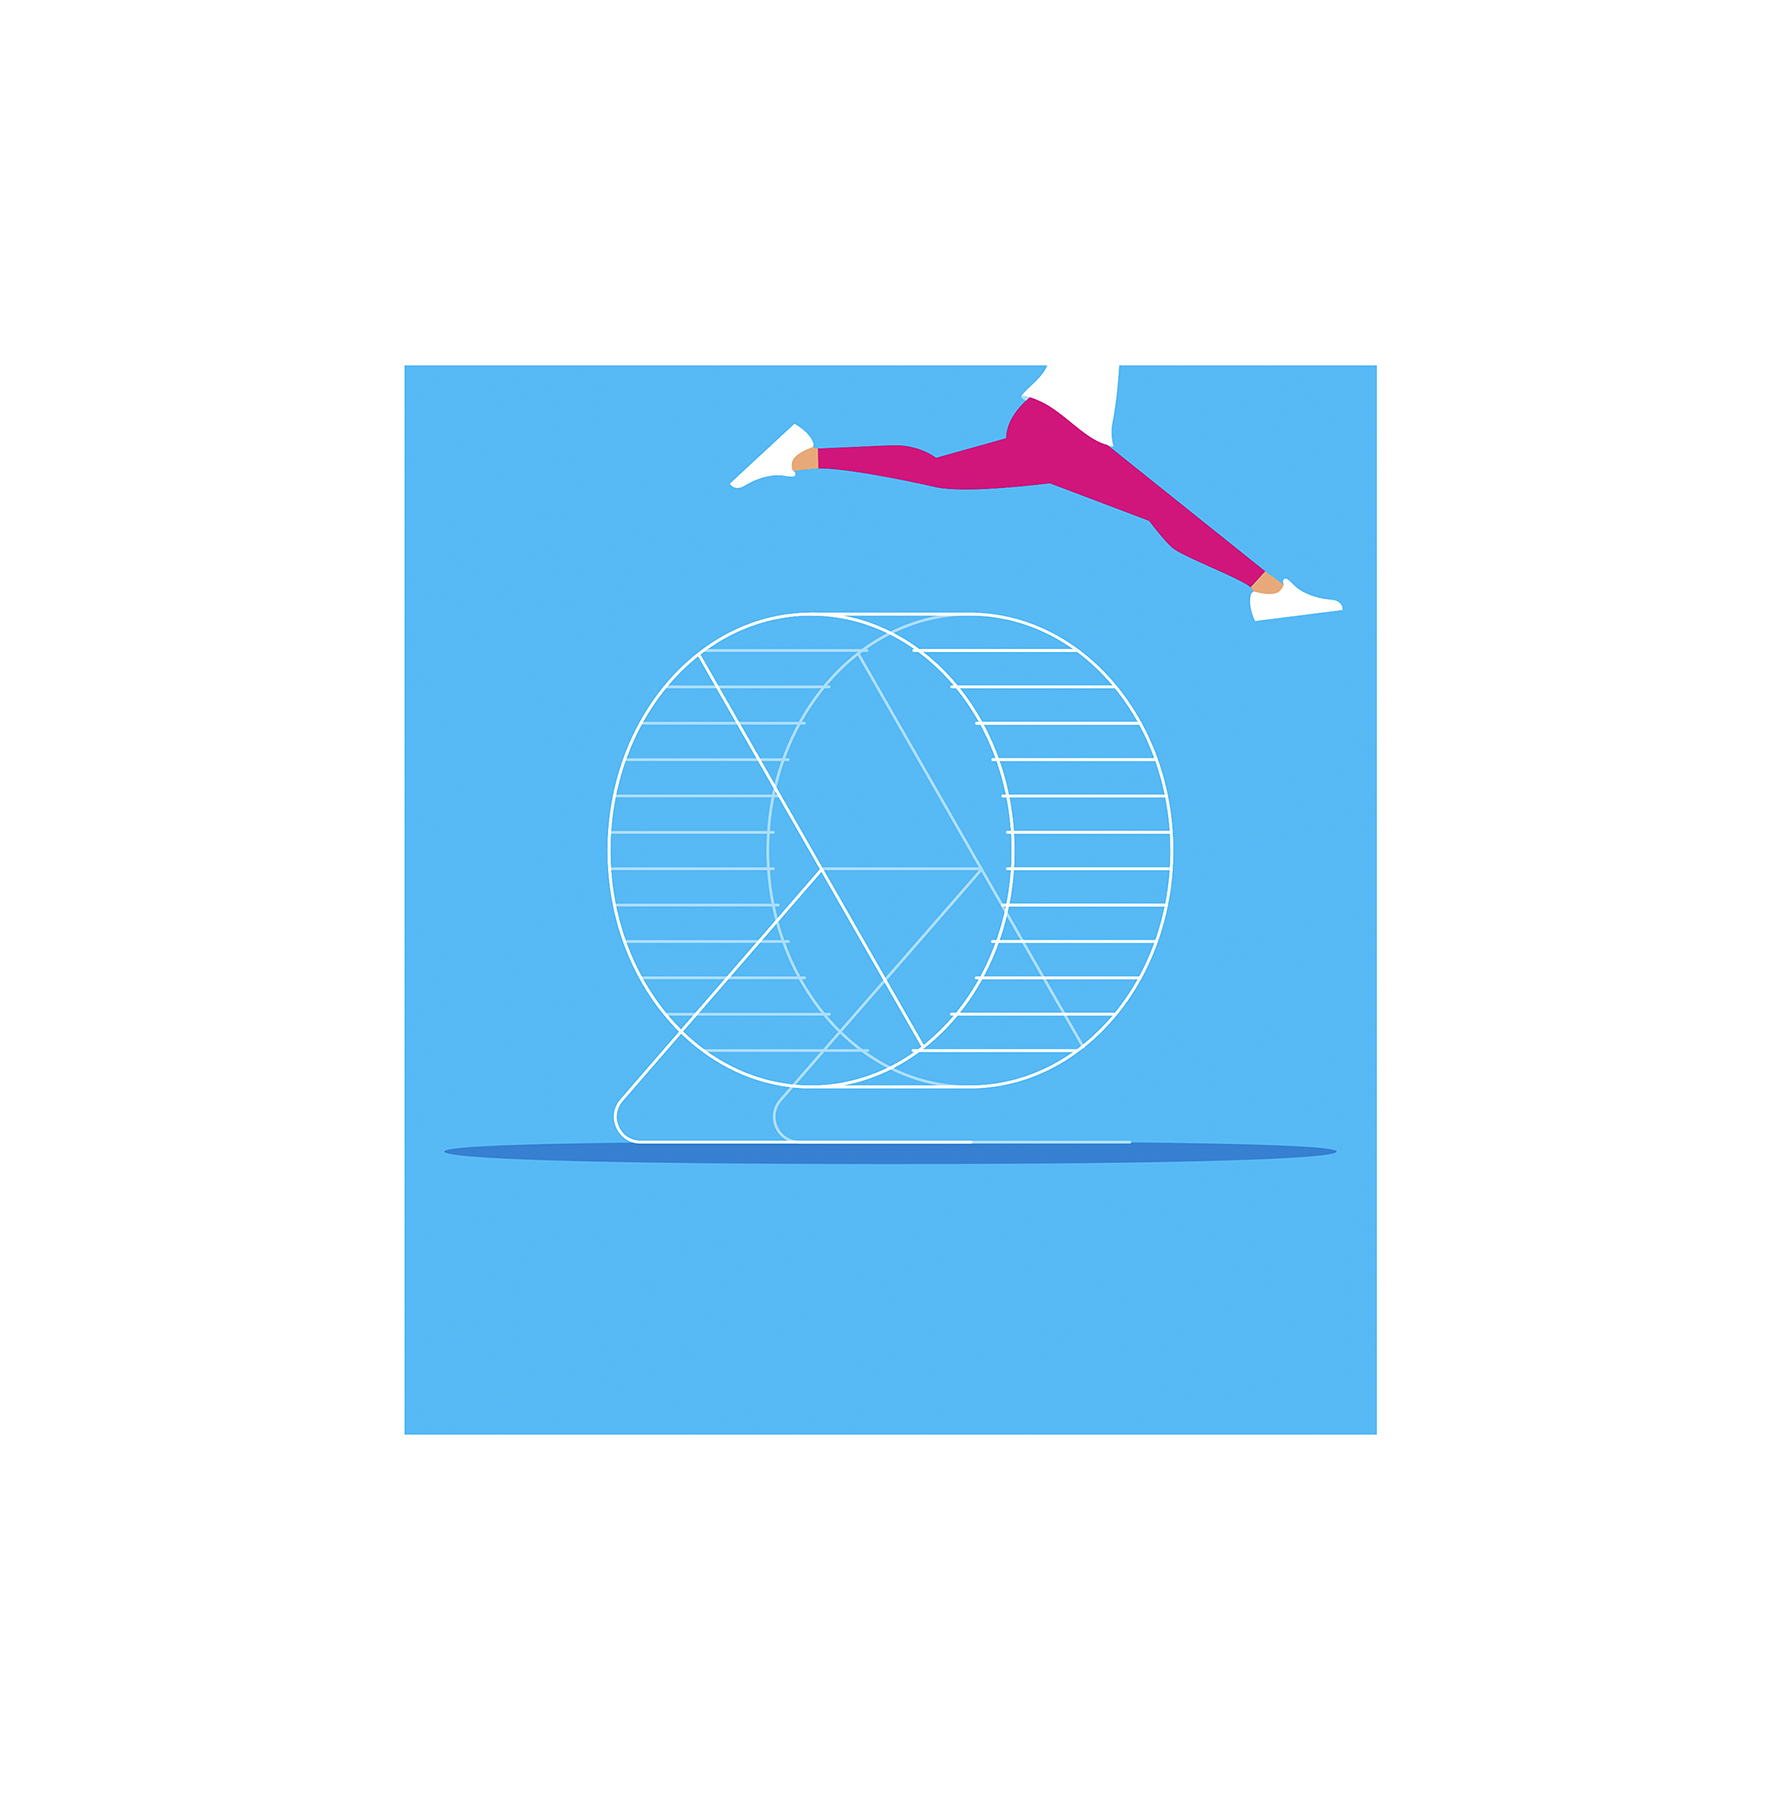 Illustration: Woman jumping over hamster wheel